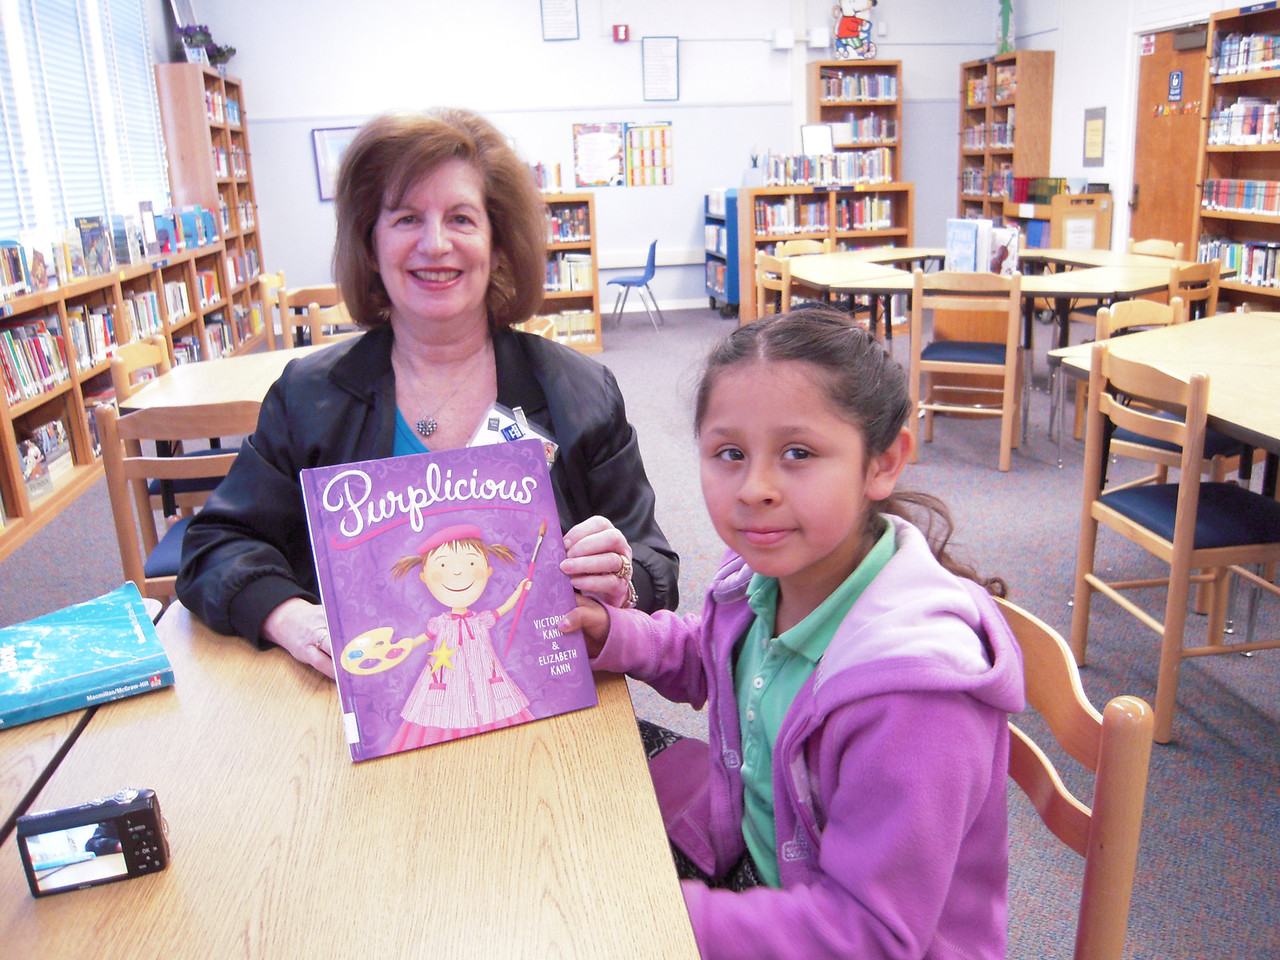 KOREH L.A. volunteer Hope S. and 2nd grader Anely V. at Castle Heights Elementary.